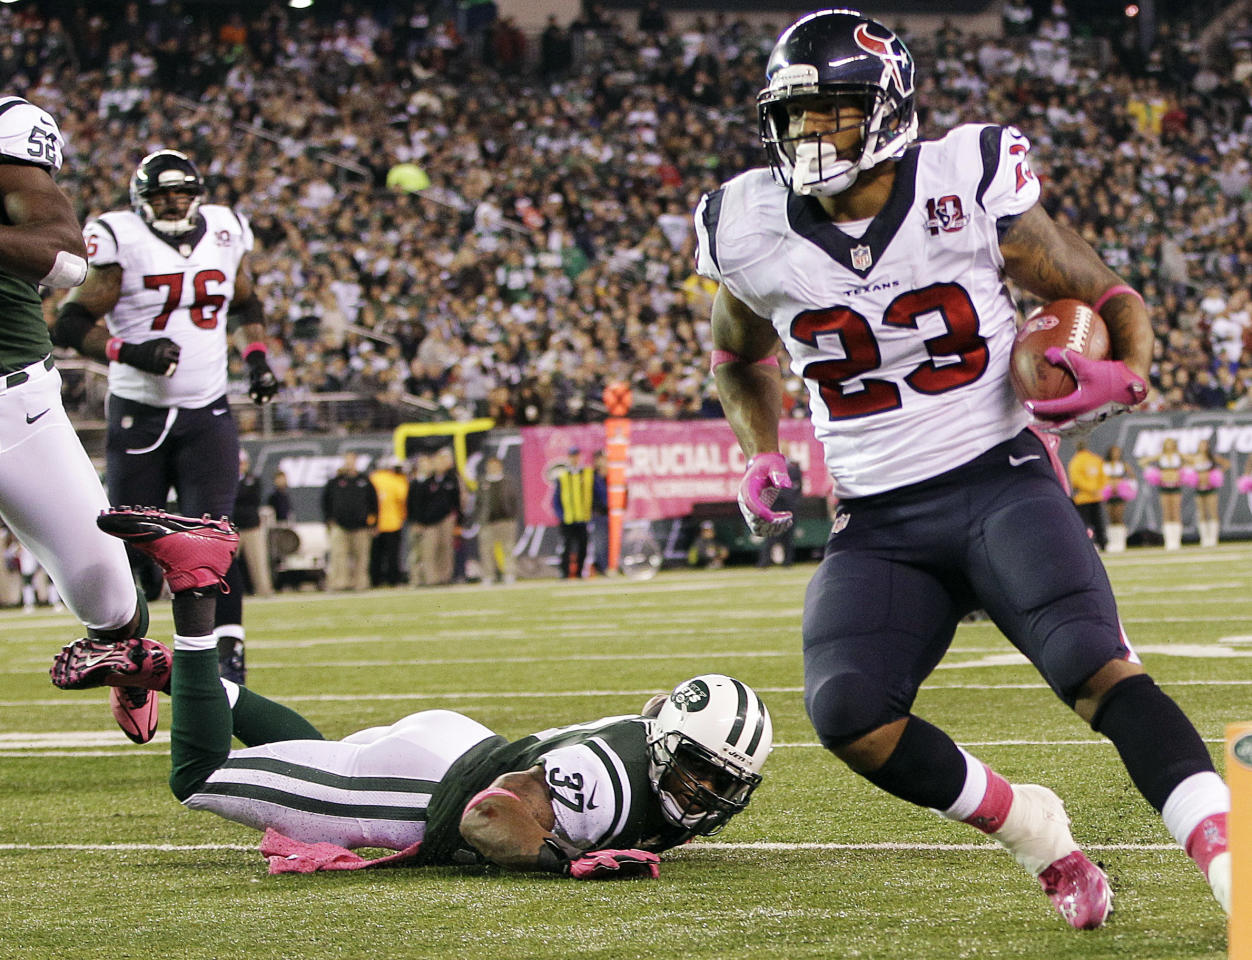 Houston Texans running back Arian Foster (23) rushes for a touchdown as New York Jets strong safety Yeremiah Bell (37) falls down on the play during the first half of an NFL football game, Monday, Oct. 8, 2012, in East Rutherford, N.J. (AP Photo/Kathy Willens)